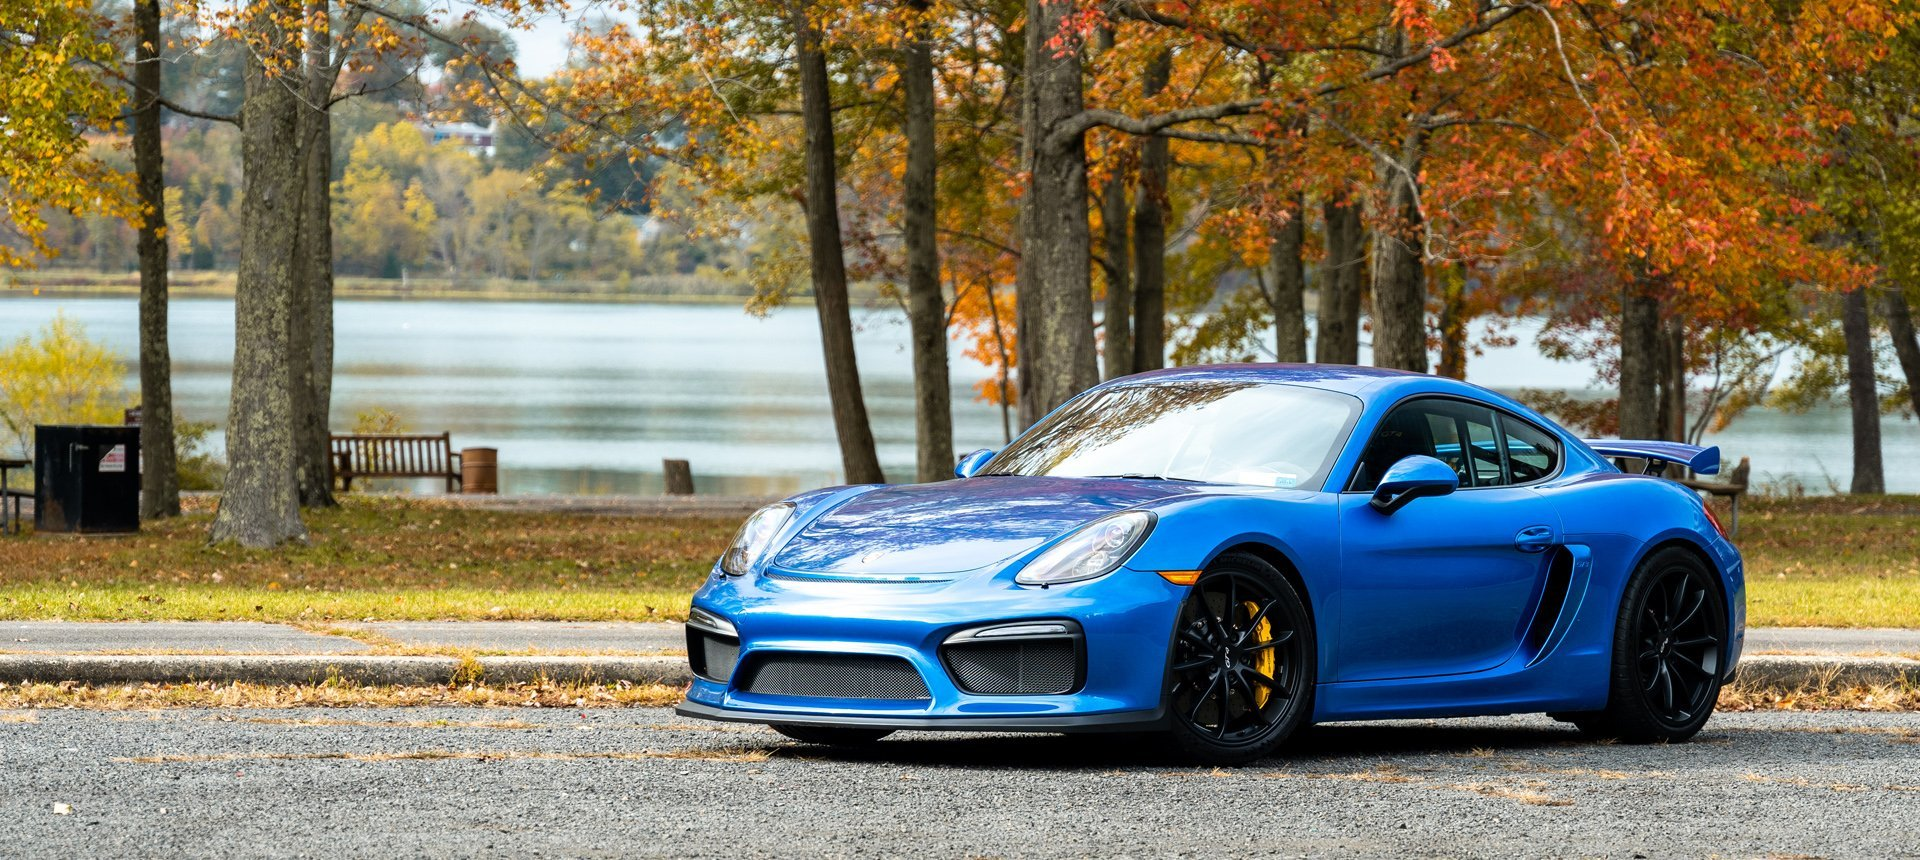 Porsche Performance & Service in Nyack, NY Rockland County